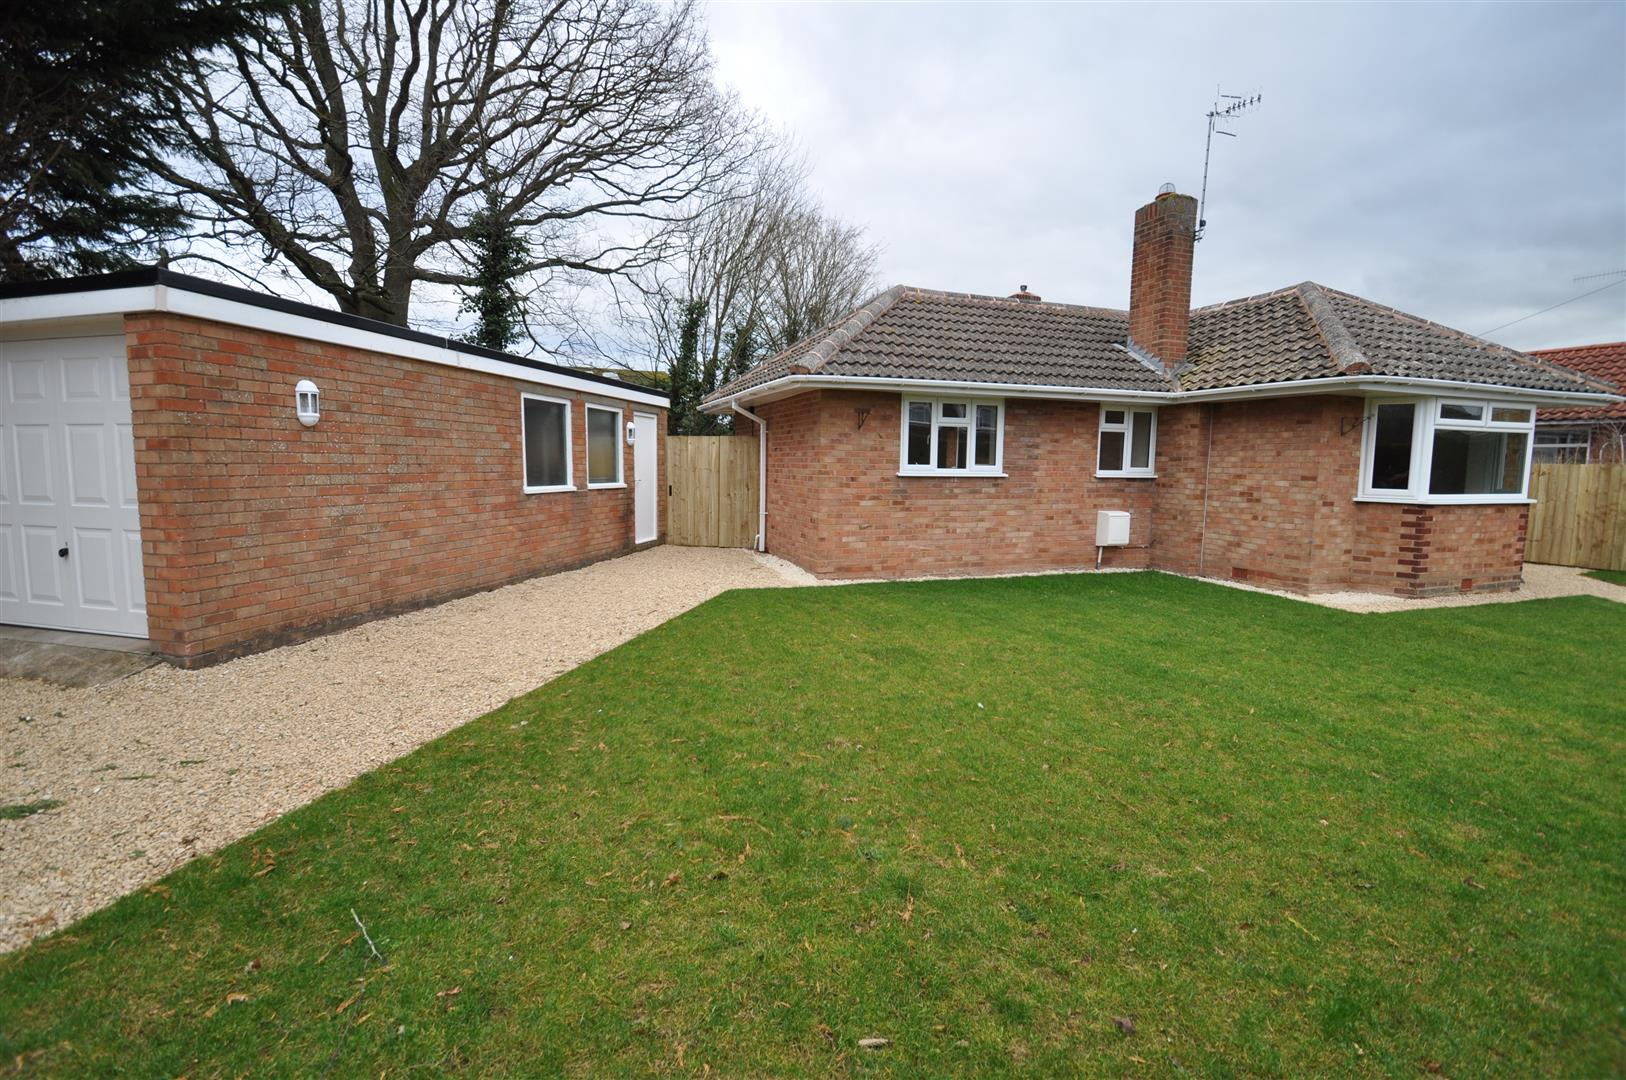 2 Bedrooms Semi Detached Bungalow for sale in Witton Avenue, Droitwich